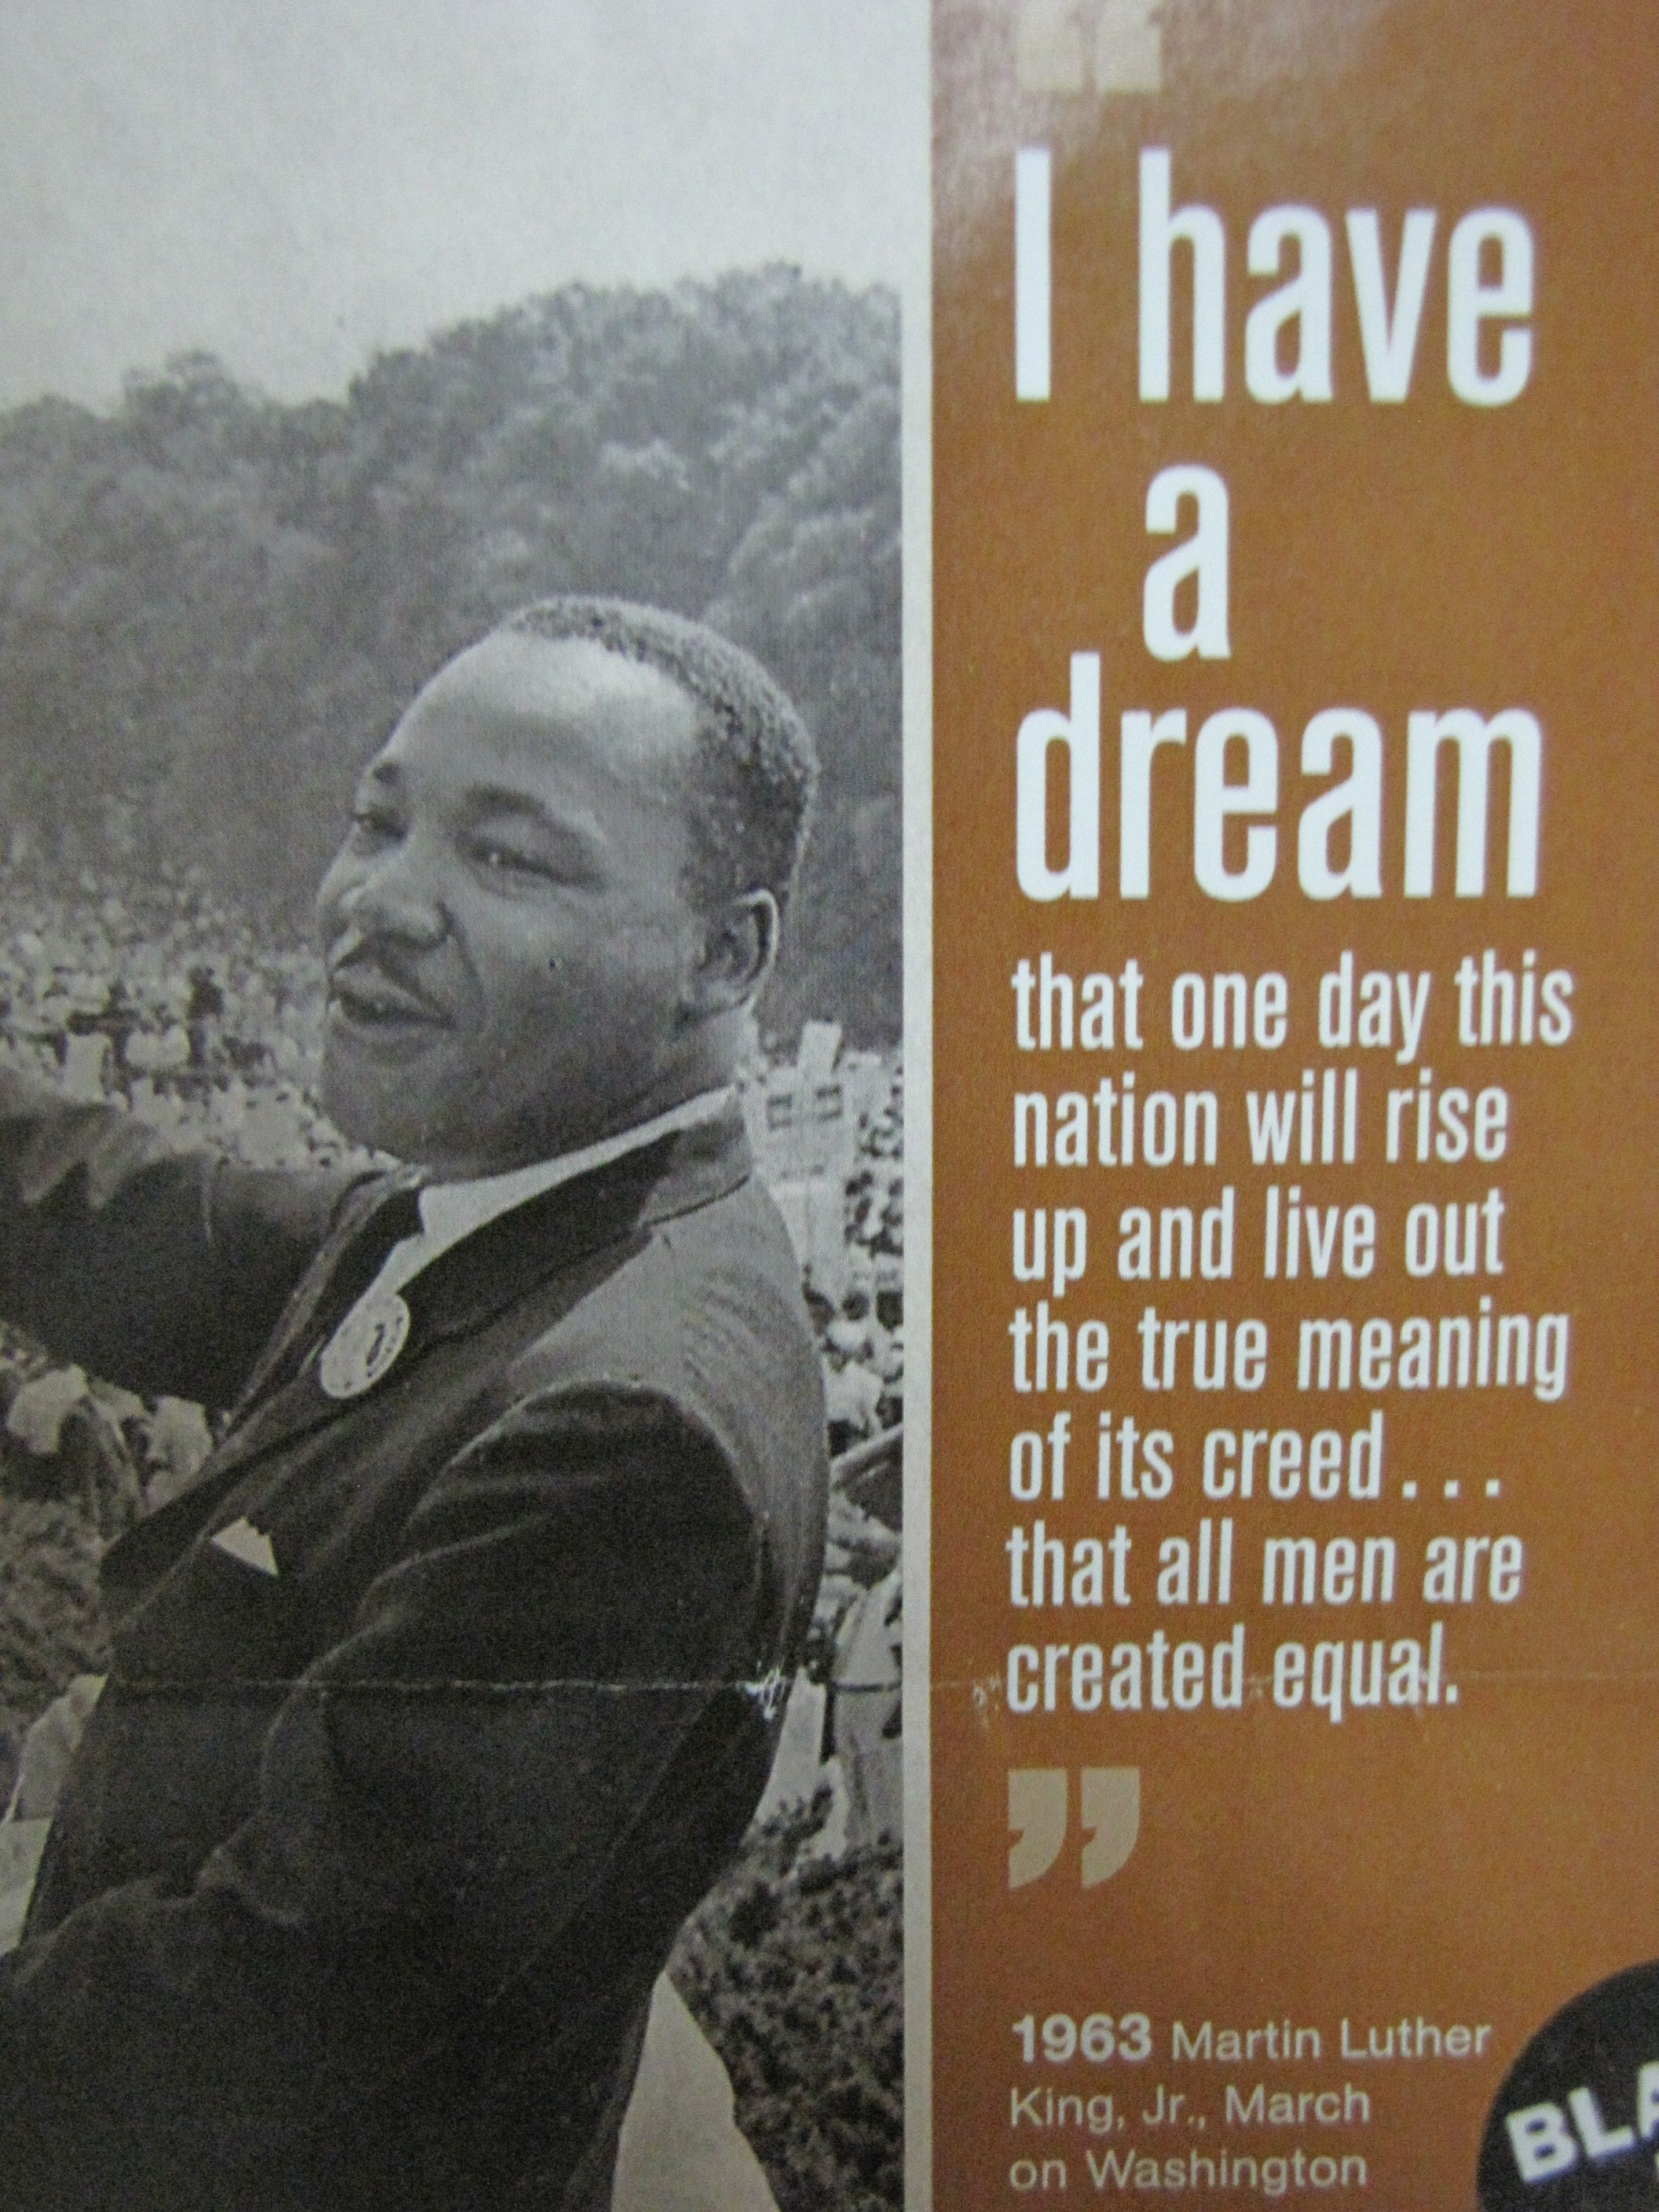 martin luther king jr i have a dream th anniversary not martin luther king jr i have a dream 50th anniversary